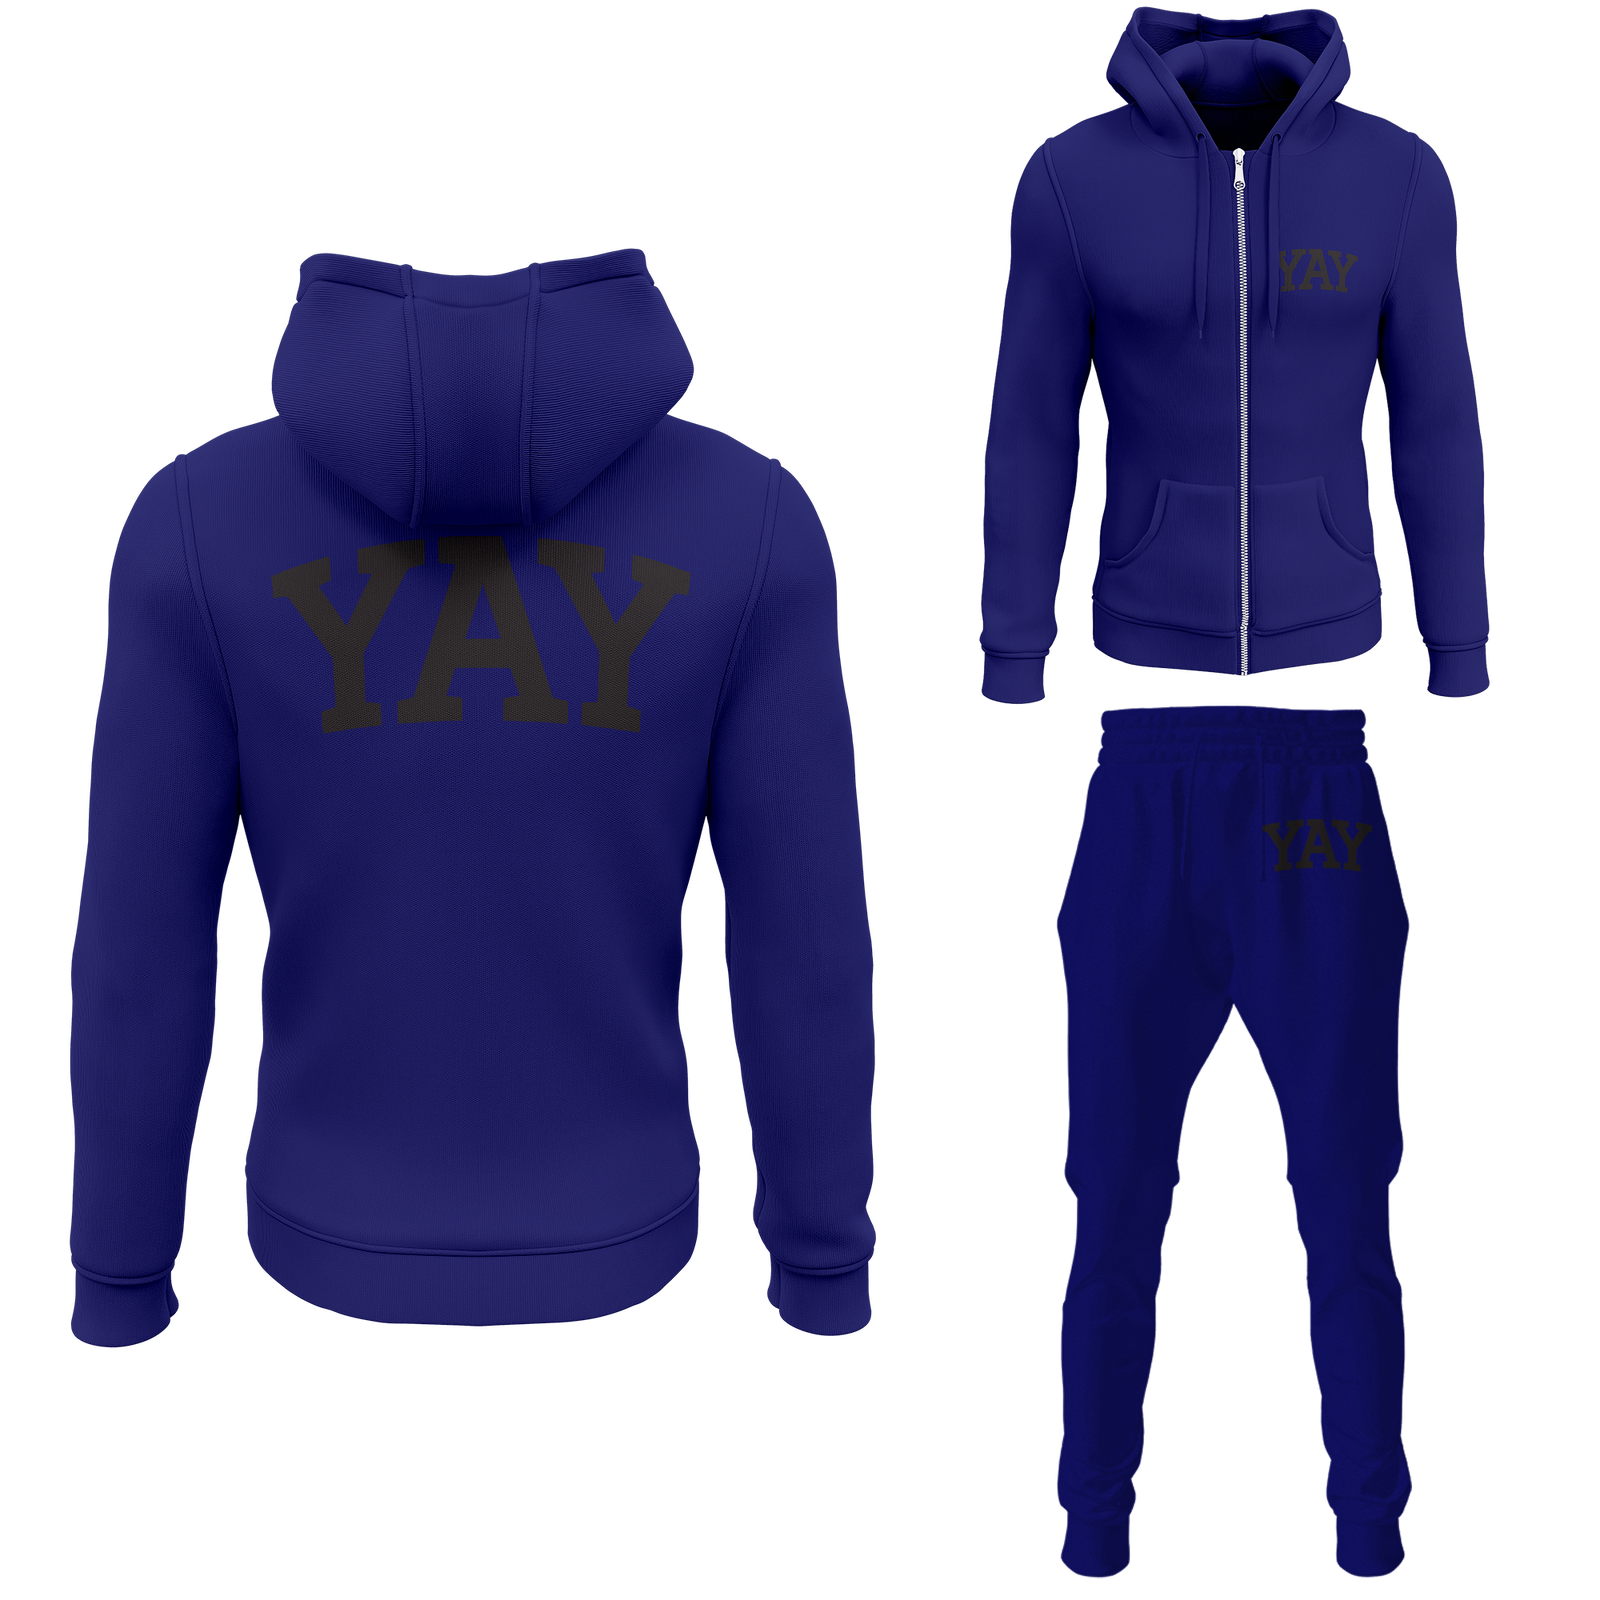 Blue Mens Yay Block Zipped Sweatsuits